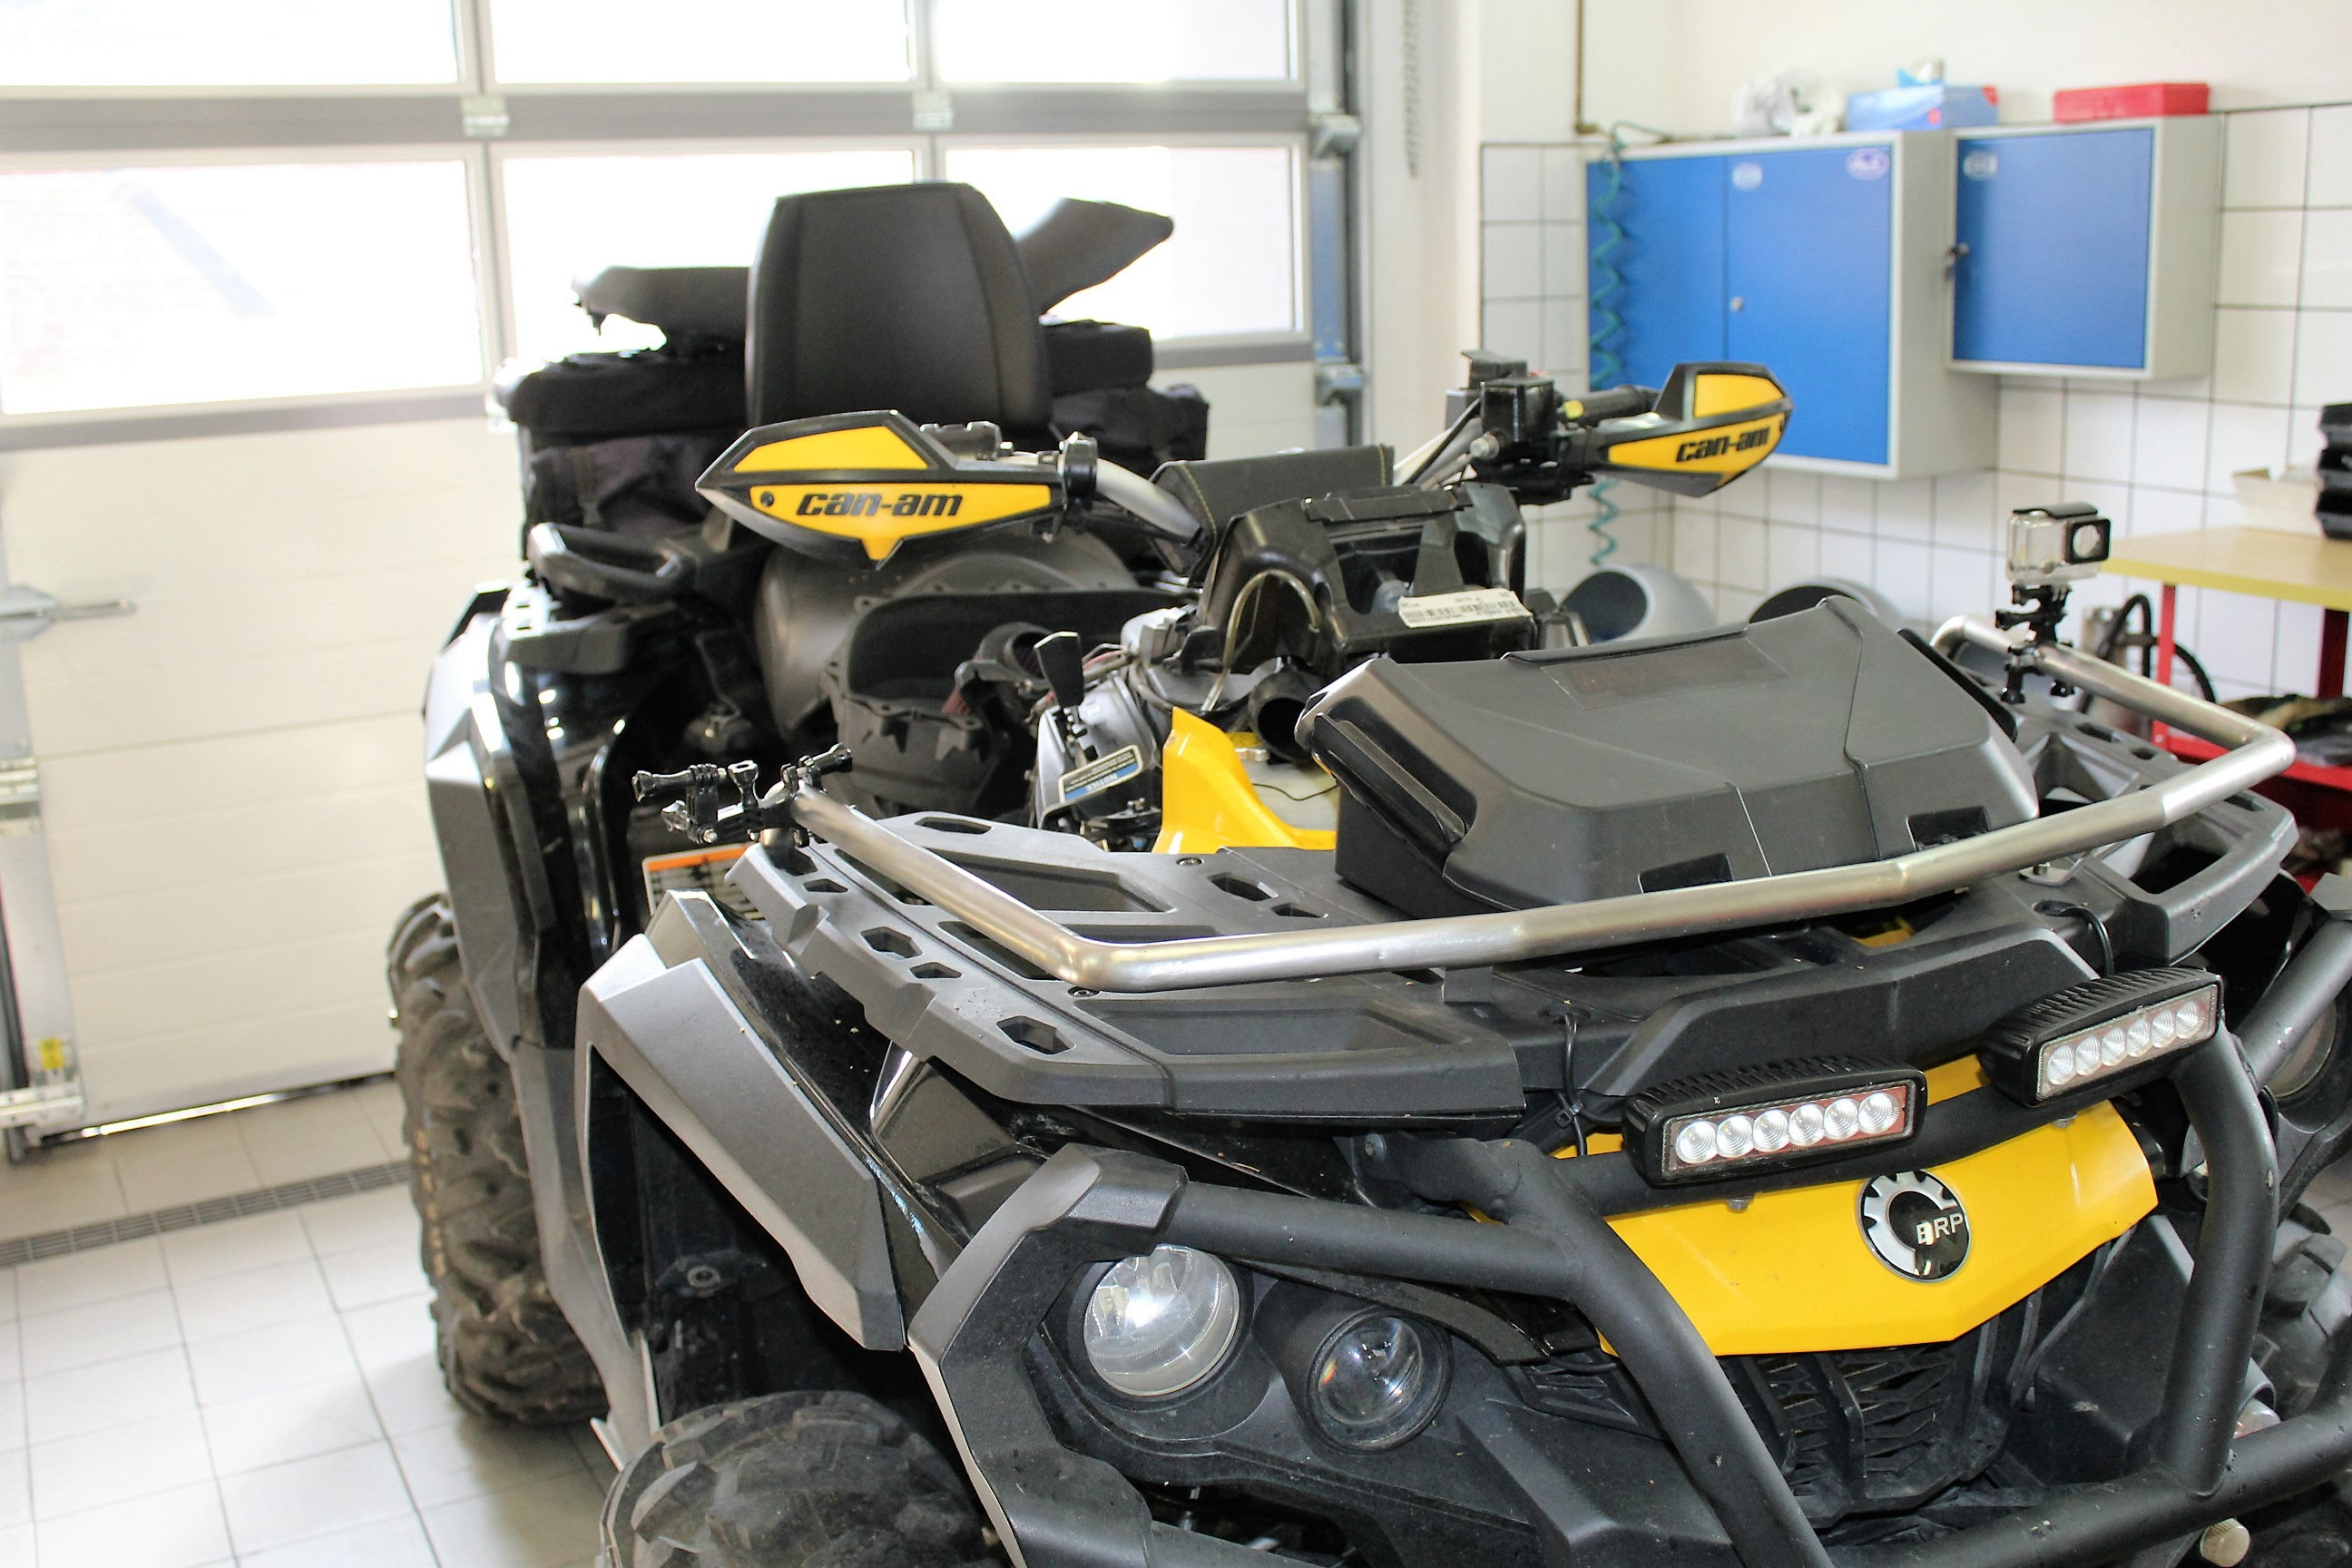 Chip tuning Can-AM Outlander 1000 Renegade 800, Maveric 1000, Comander 1000 remapping , chip tuning zdjęcie speed limiter